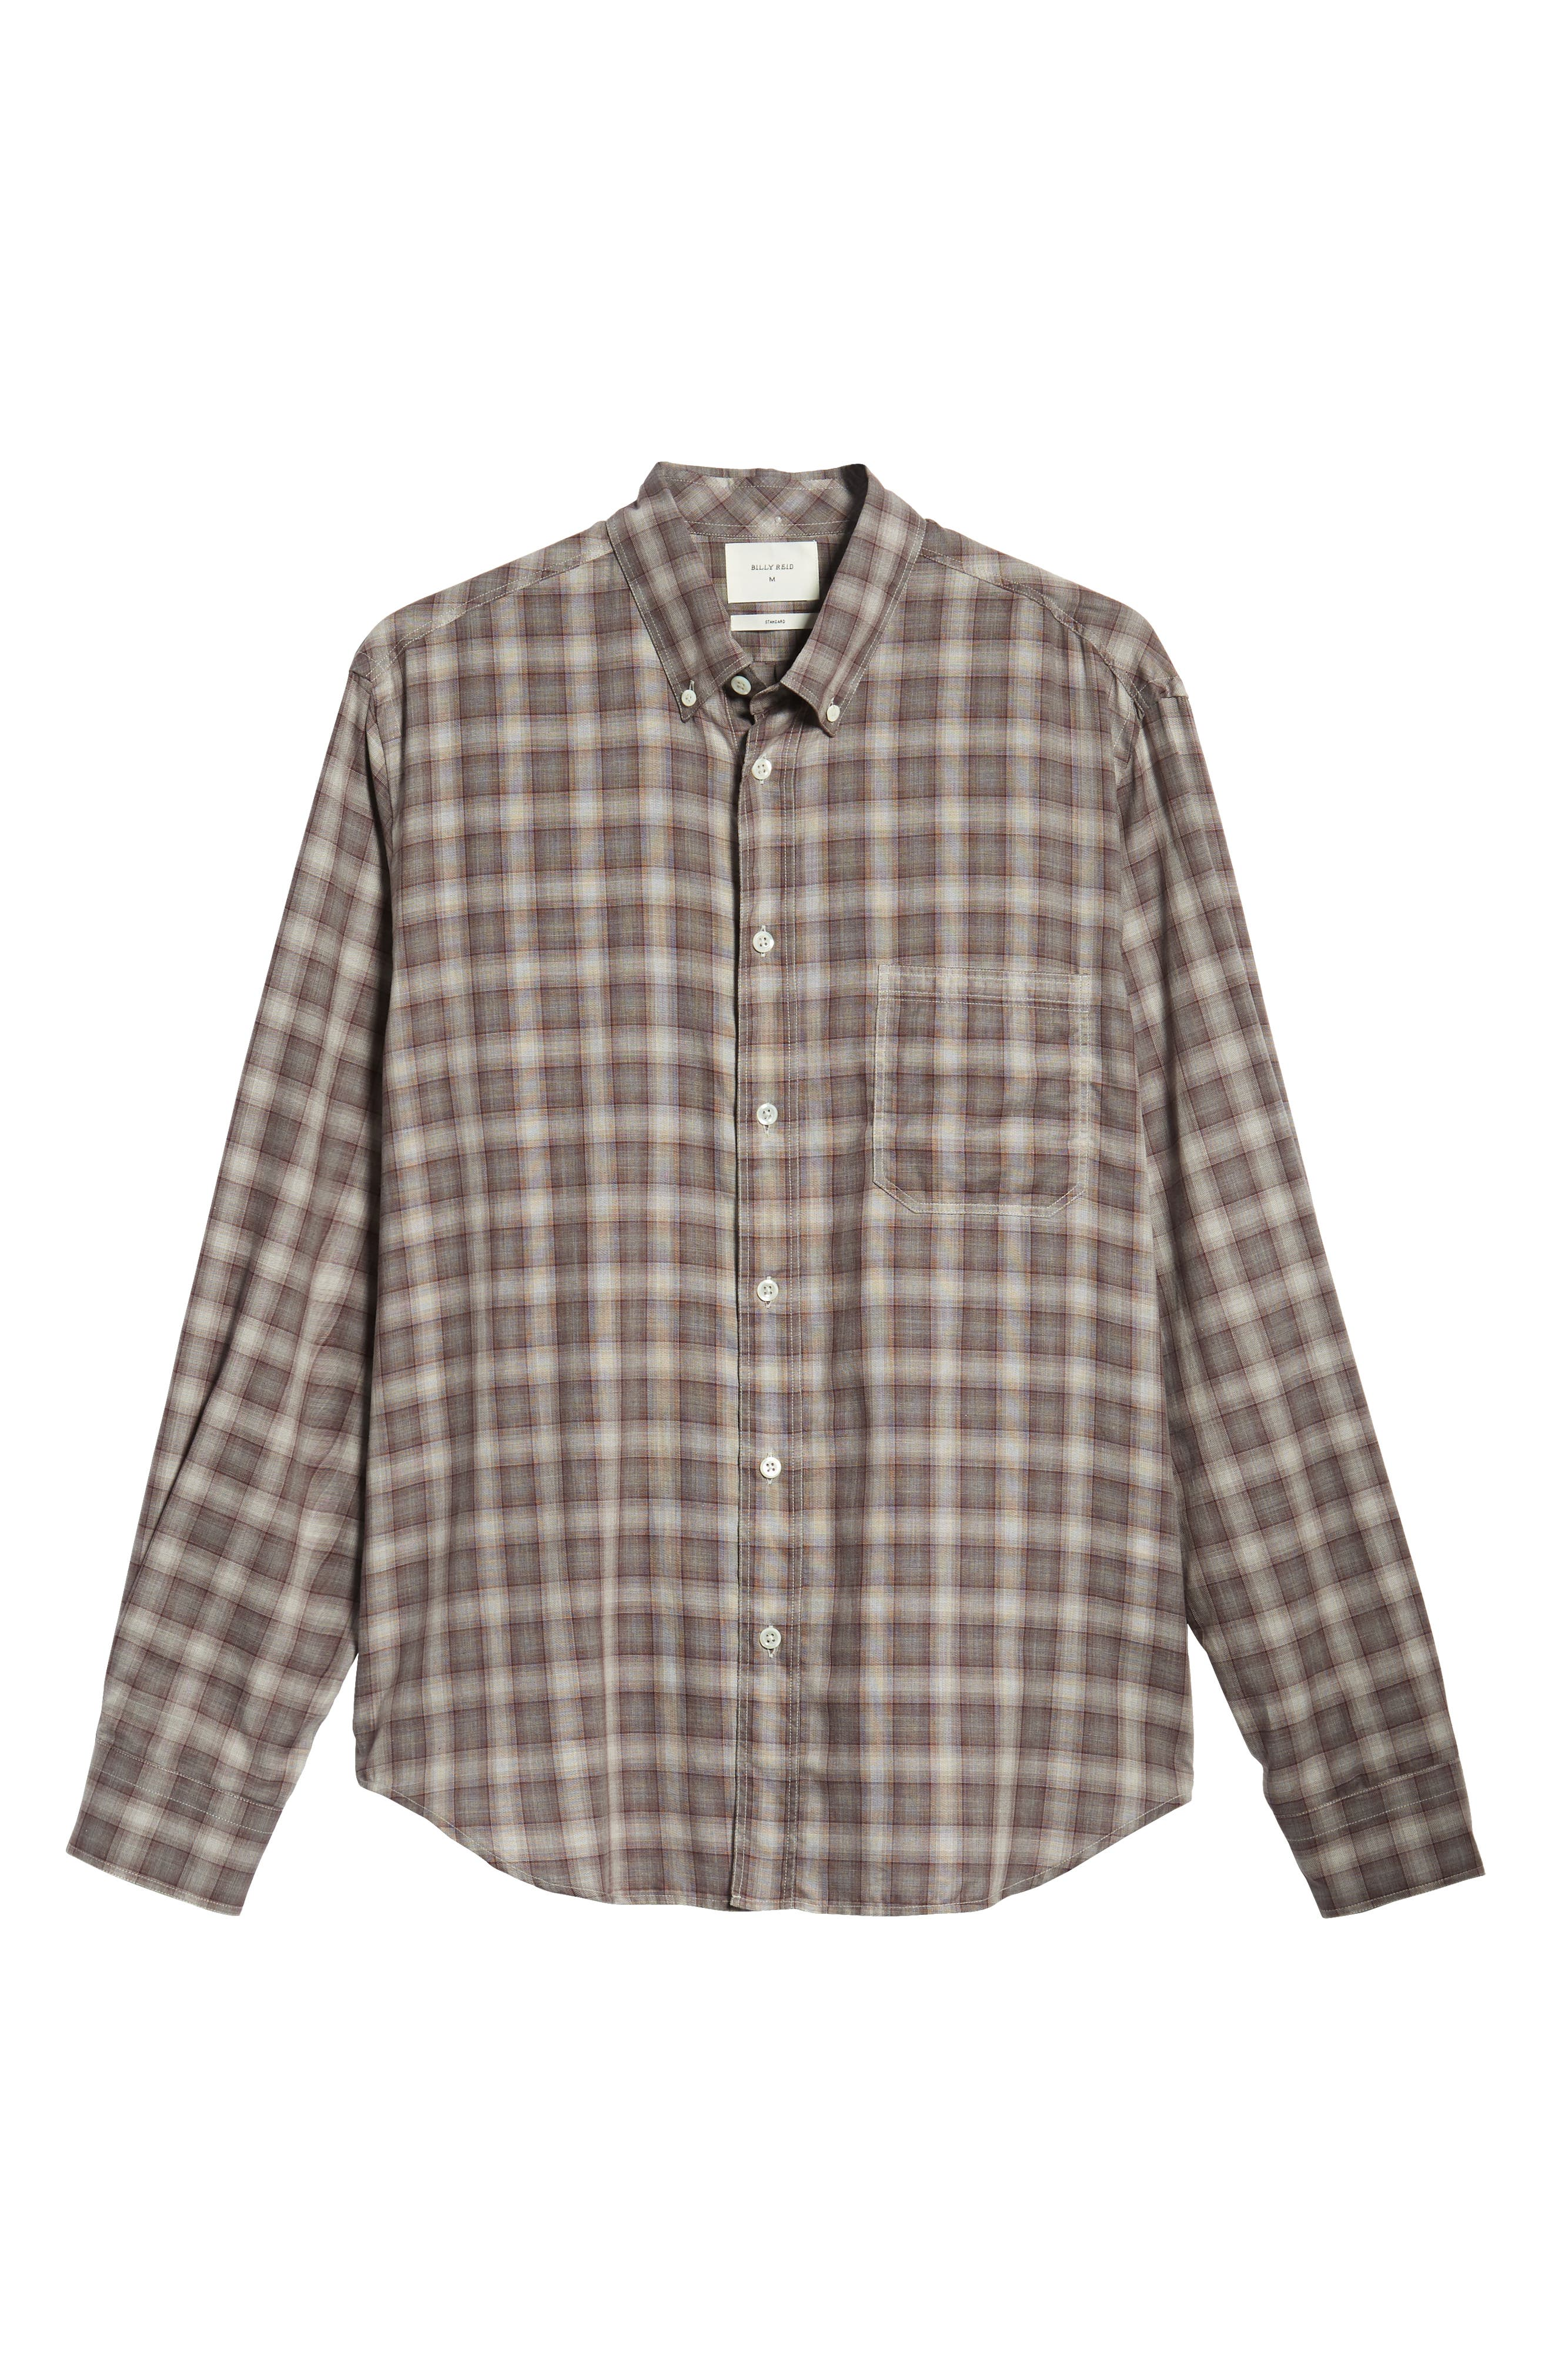 Tuscumbia Regular Fit Plaid Sport Shirt,                             Alternate thumbnail 5, color,                             930